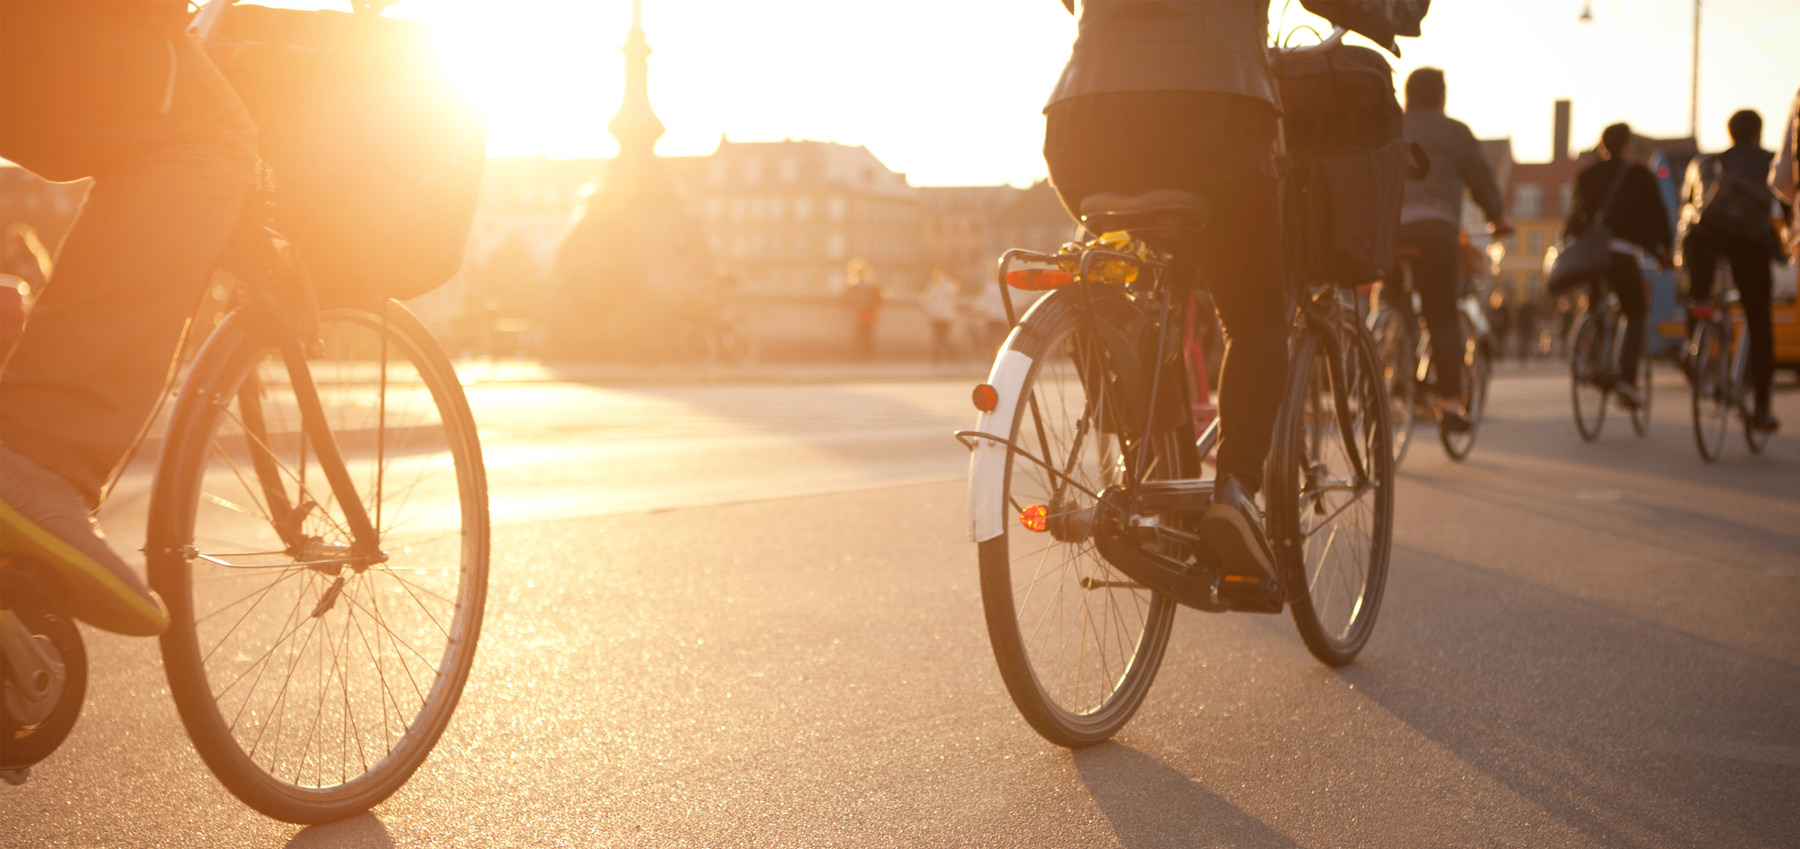 Cyclists riding in sunset